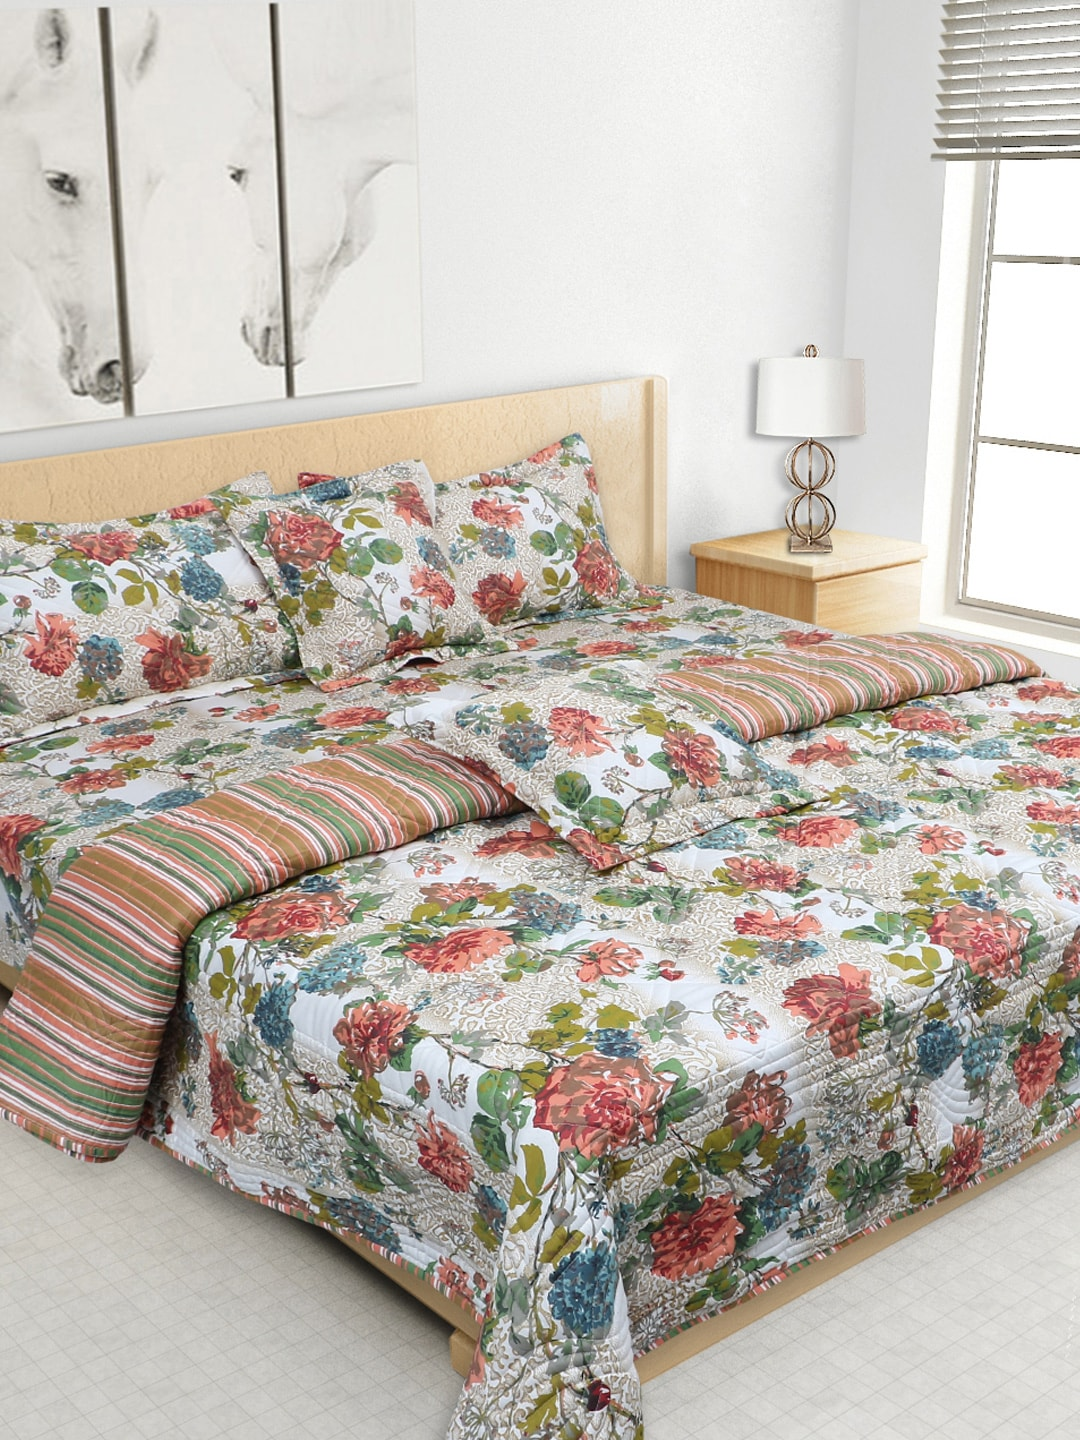 S9home by Seasons Multicoloured Printed Co-Ordinated Bedding Set with Quilt (Comforter)